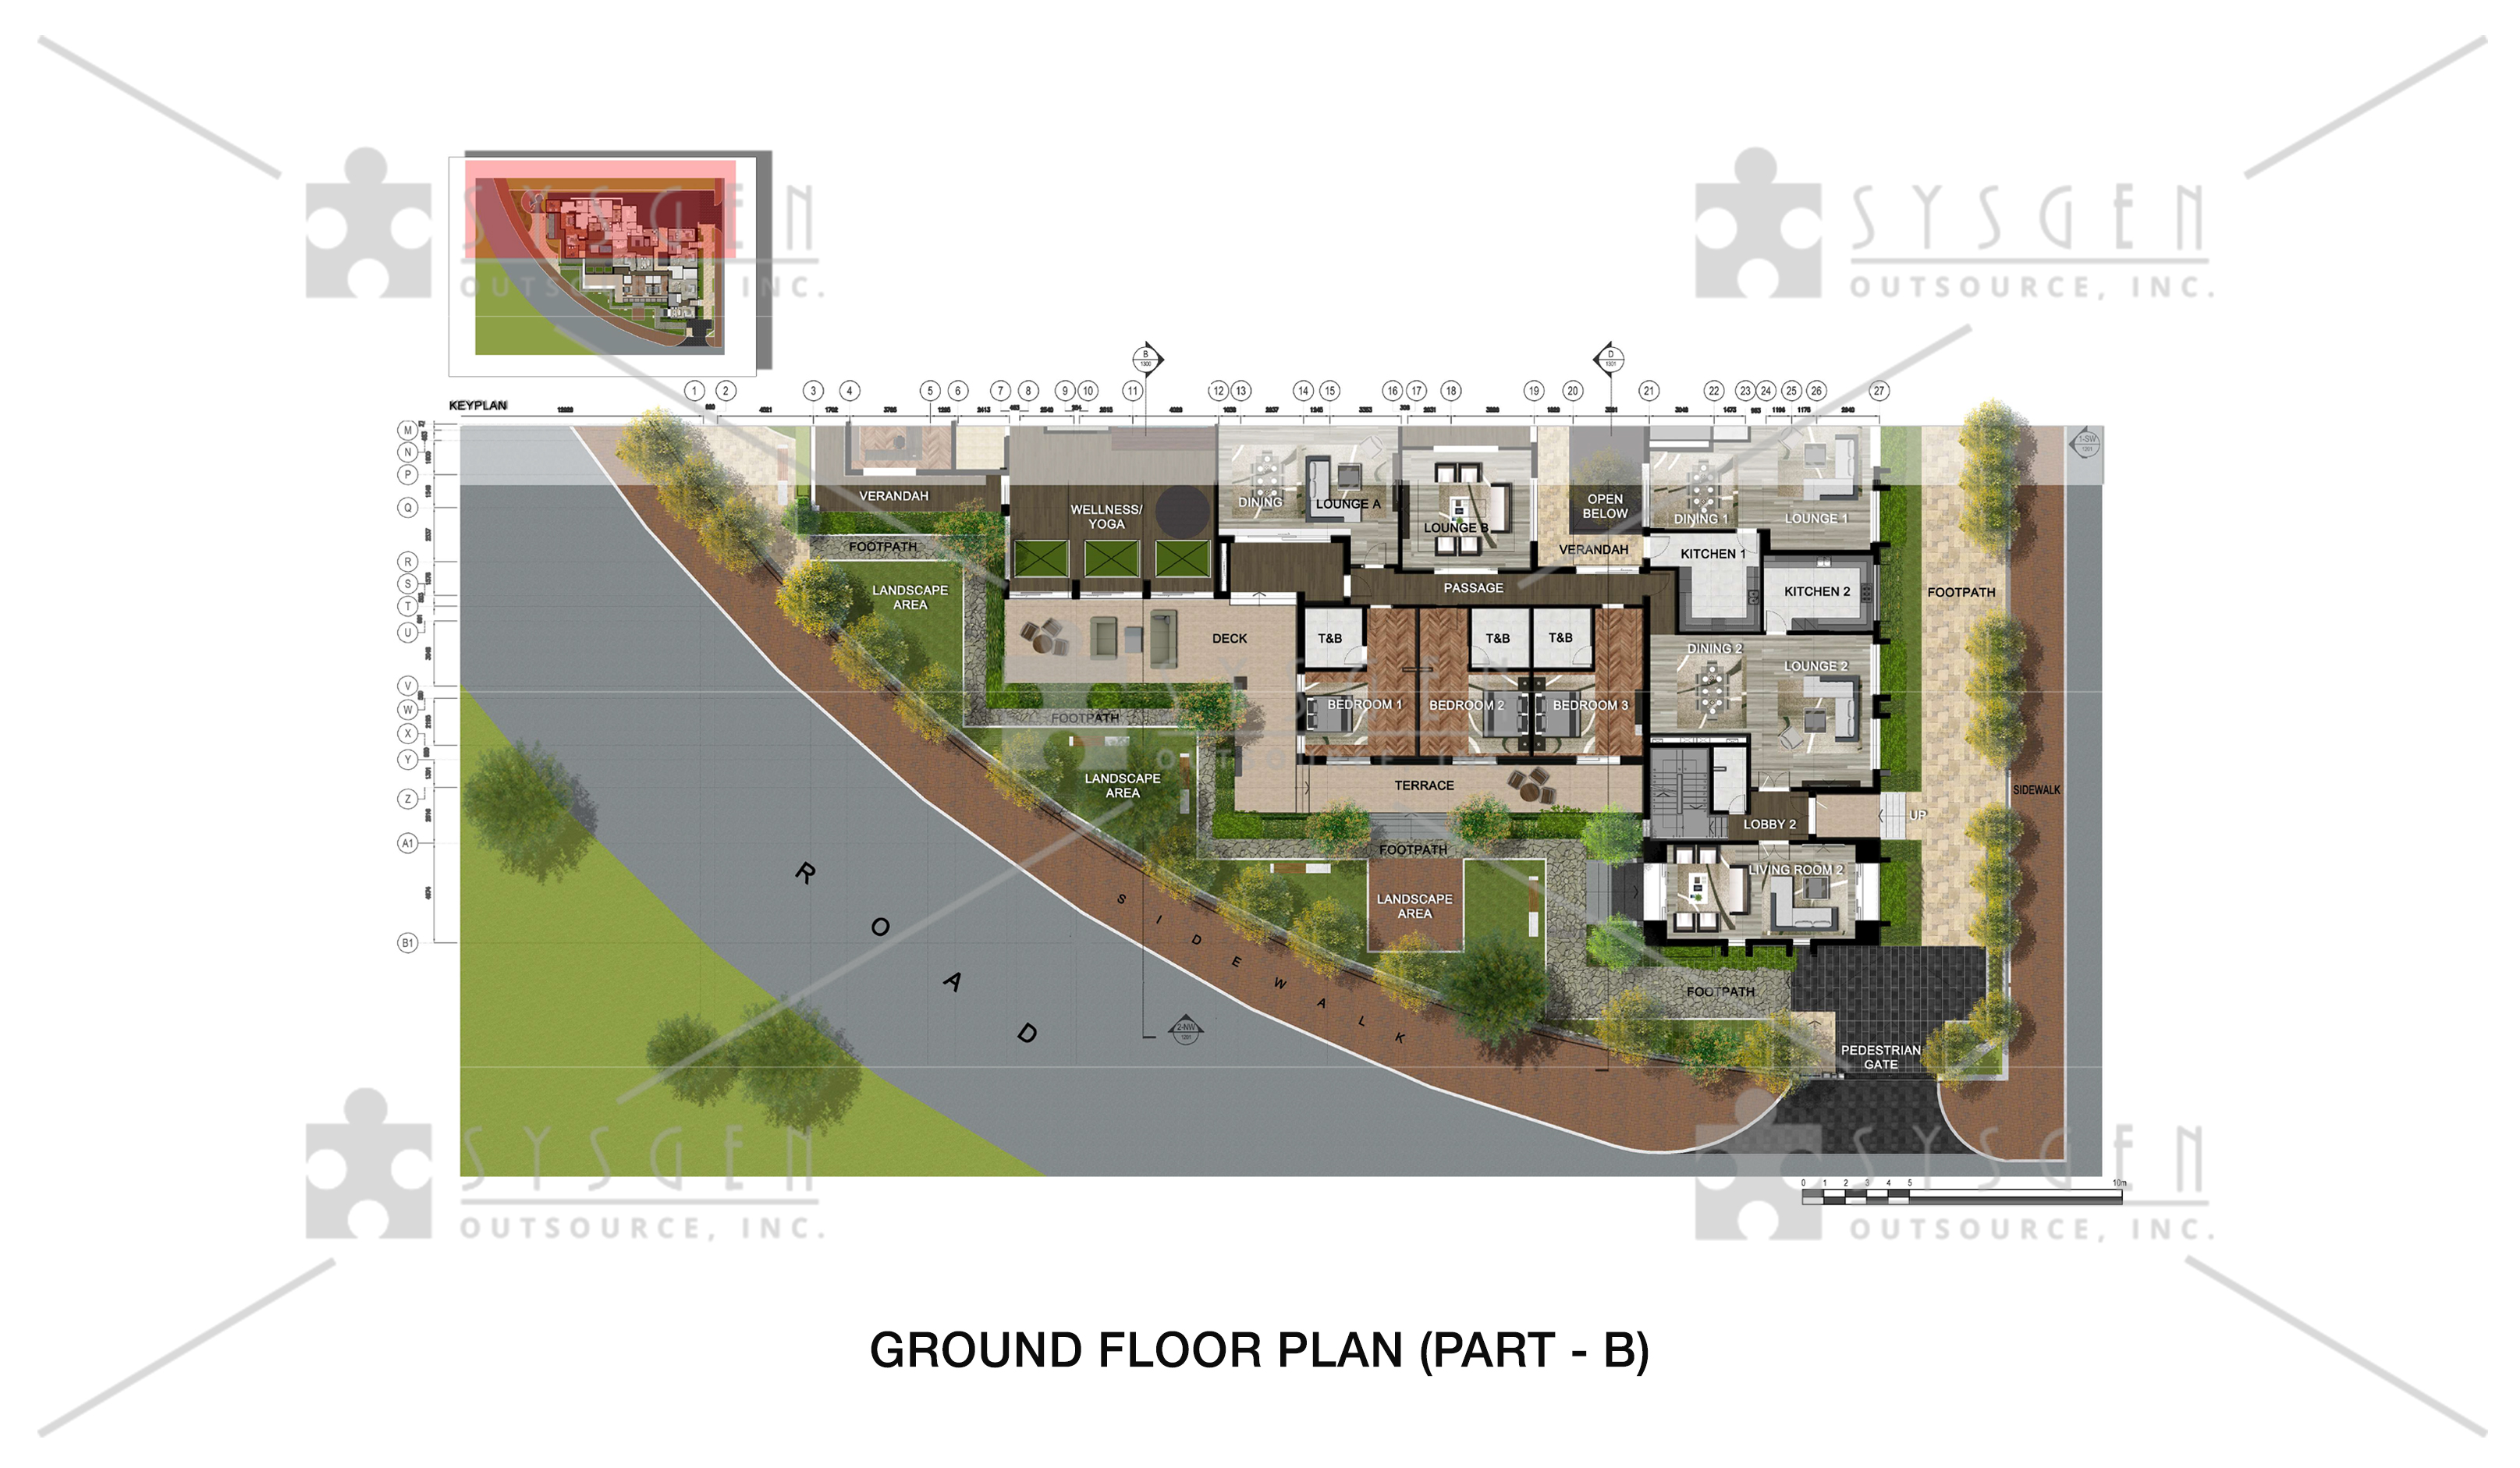 sysgen-outsource-cad-outsourcing-services-sketch-up-residential_villa-jj5